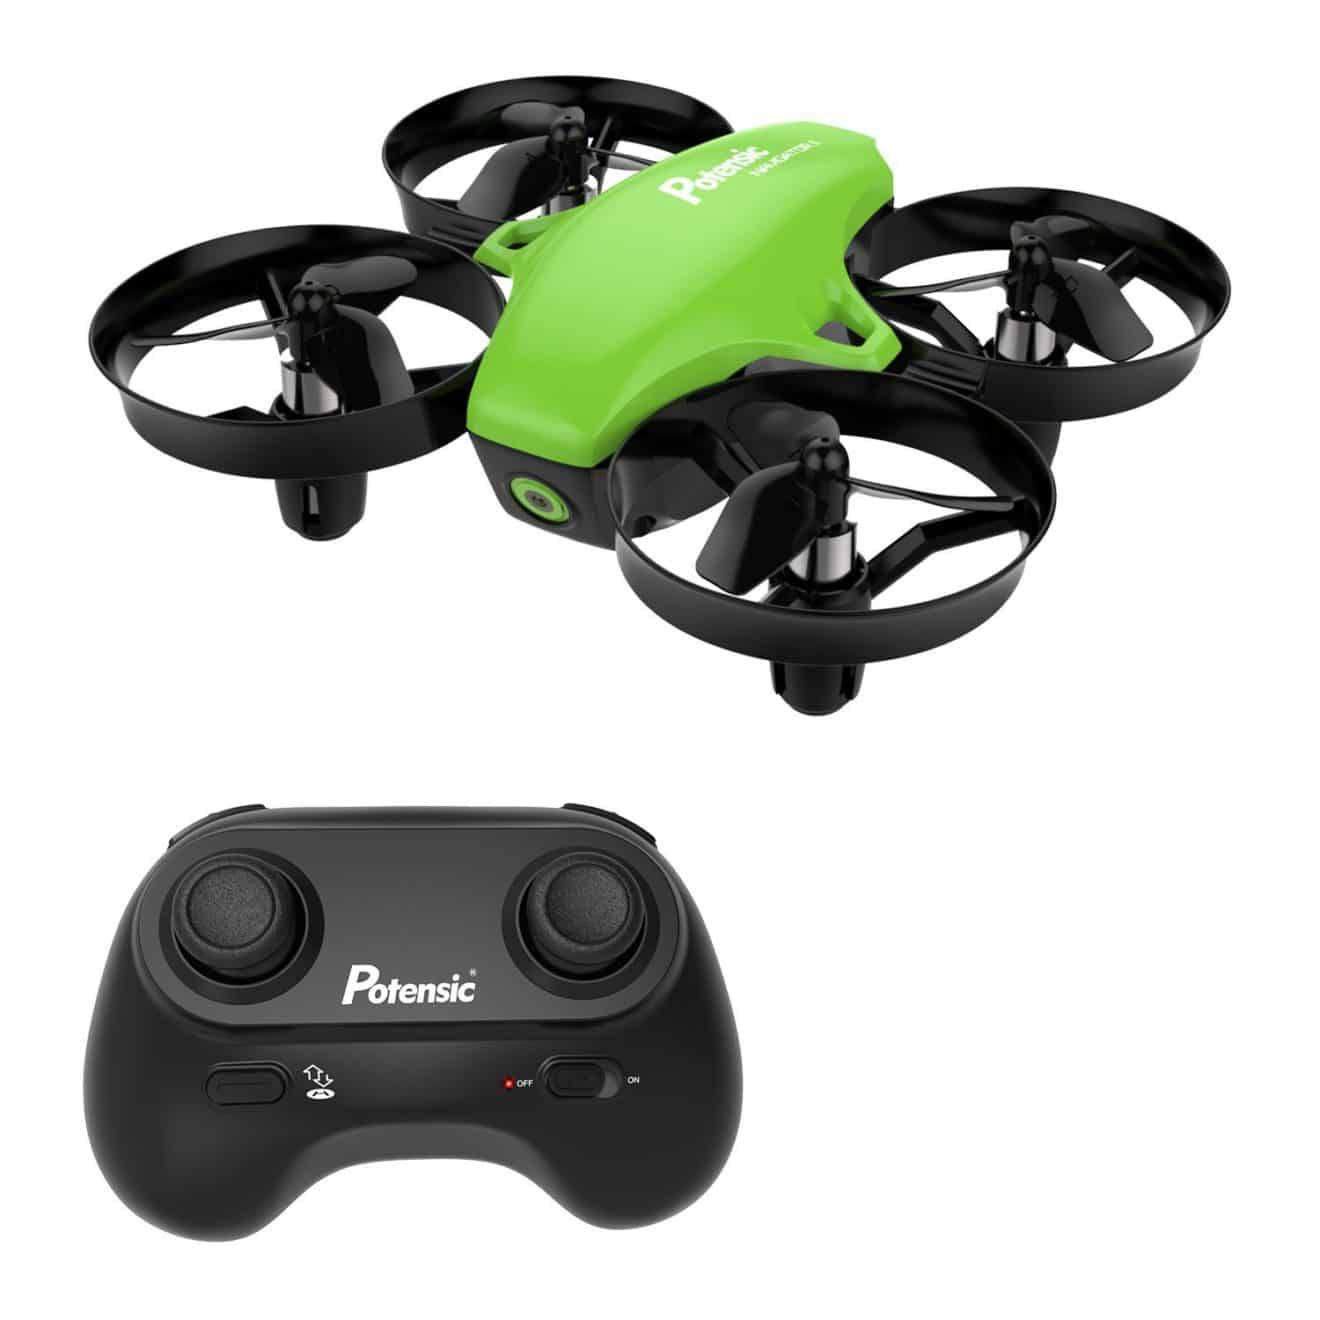 Mini Drone A20 Potensic